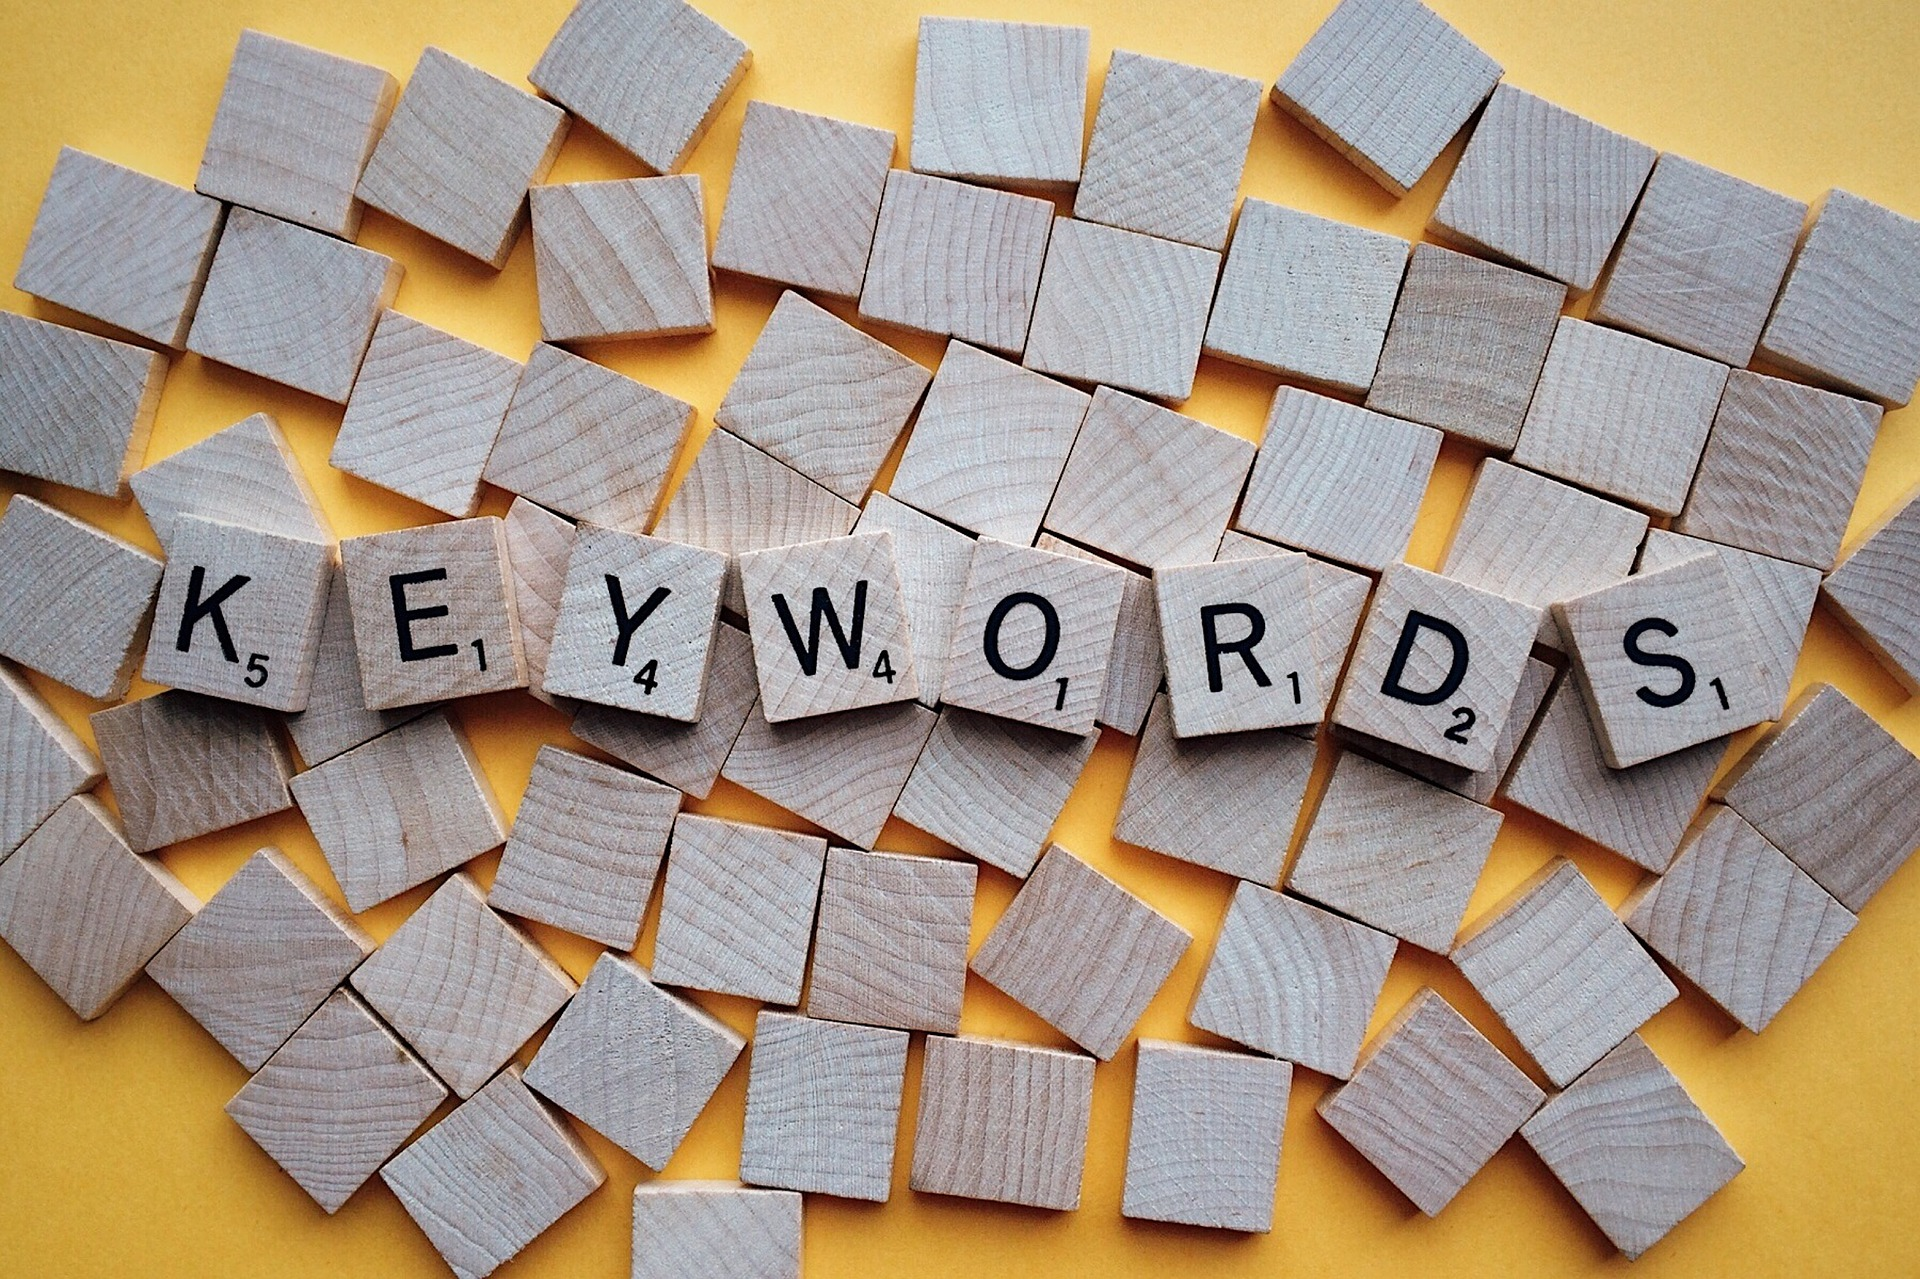 How to choose keywords for your website | Civic Web Media